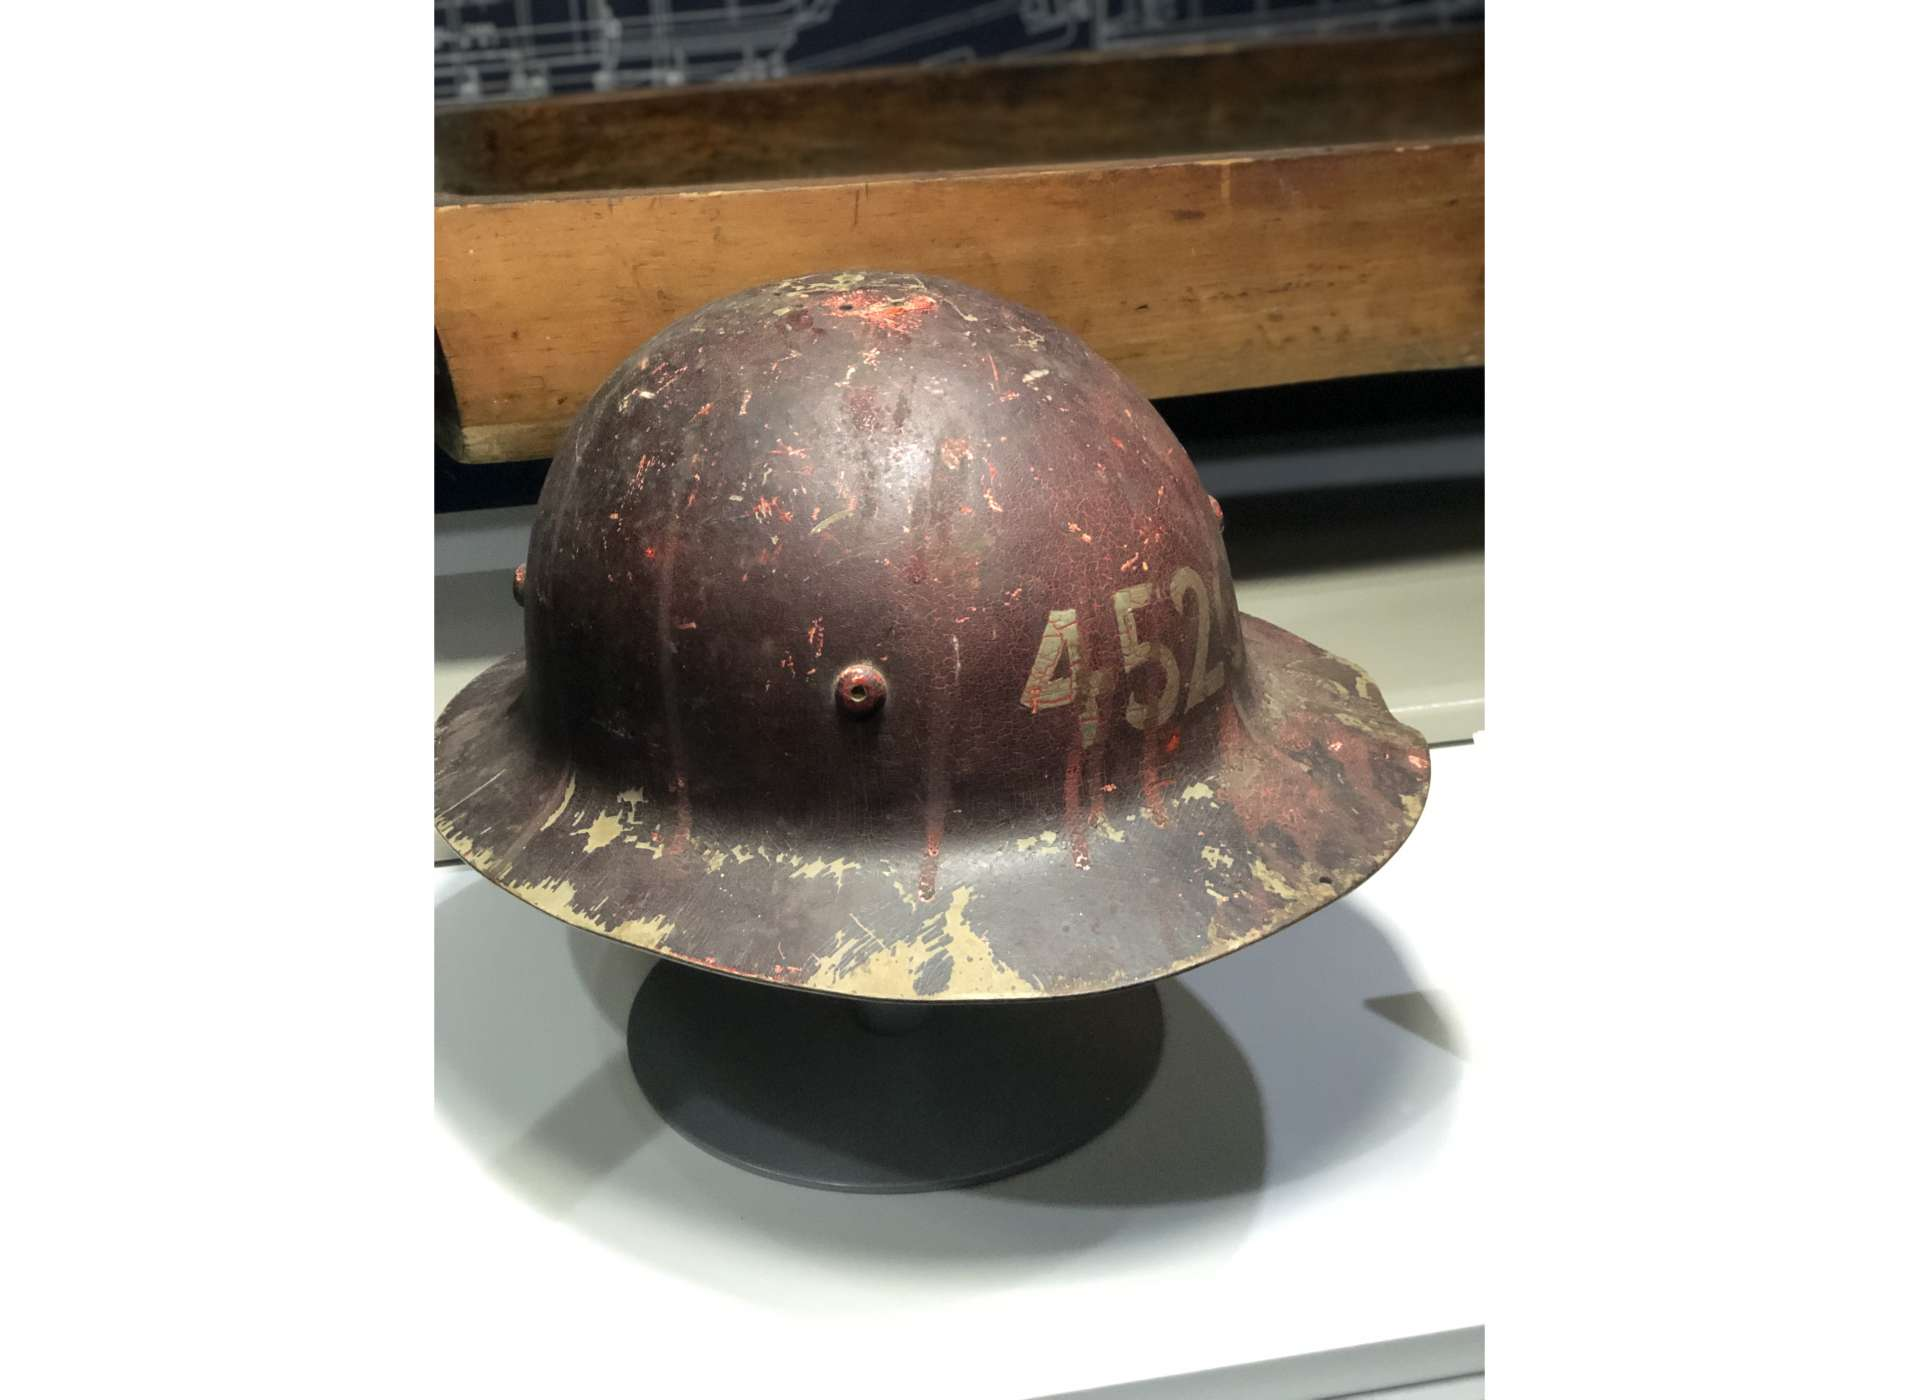 The Higgins Industries hard hat of Joseph R. Poche, who apprenticed in the machine shop at the Higgins City Park plant.